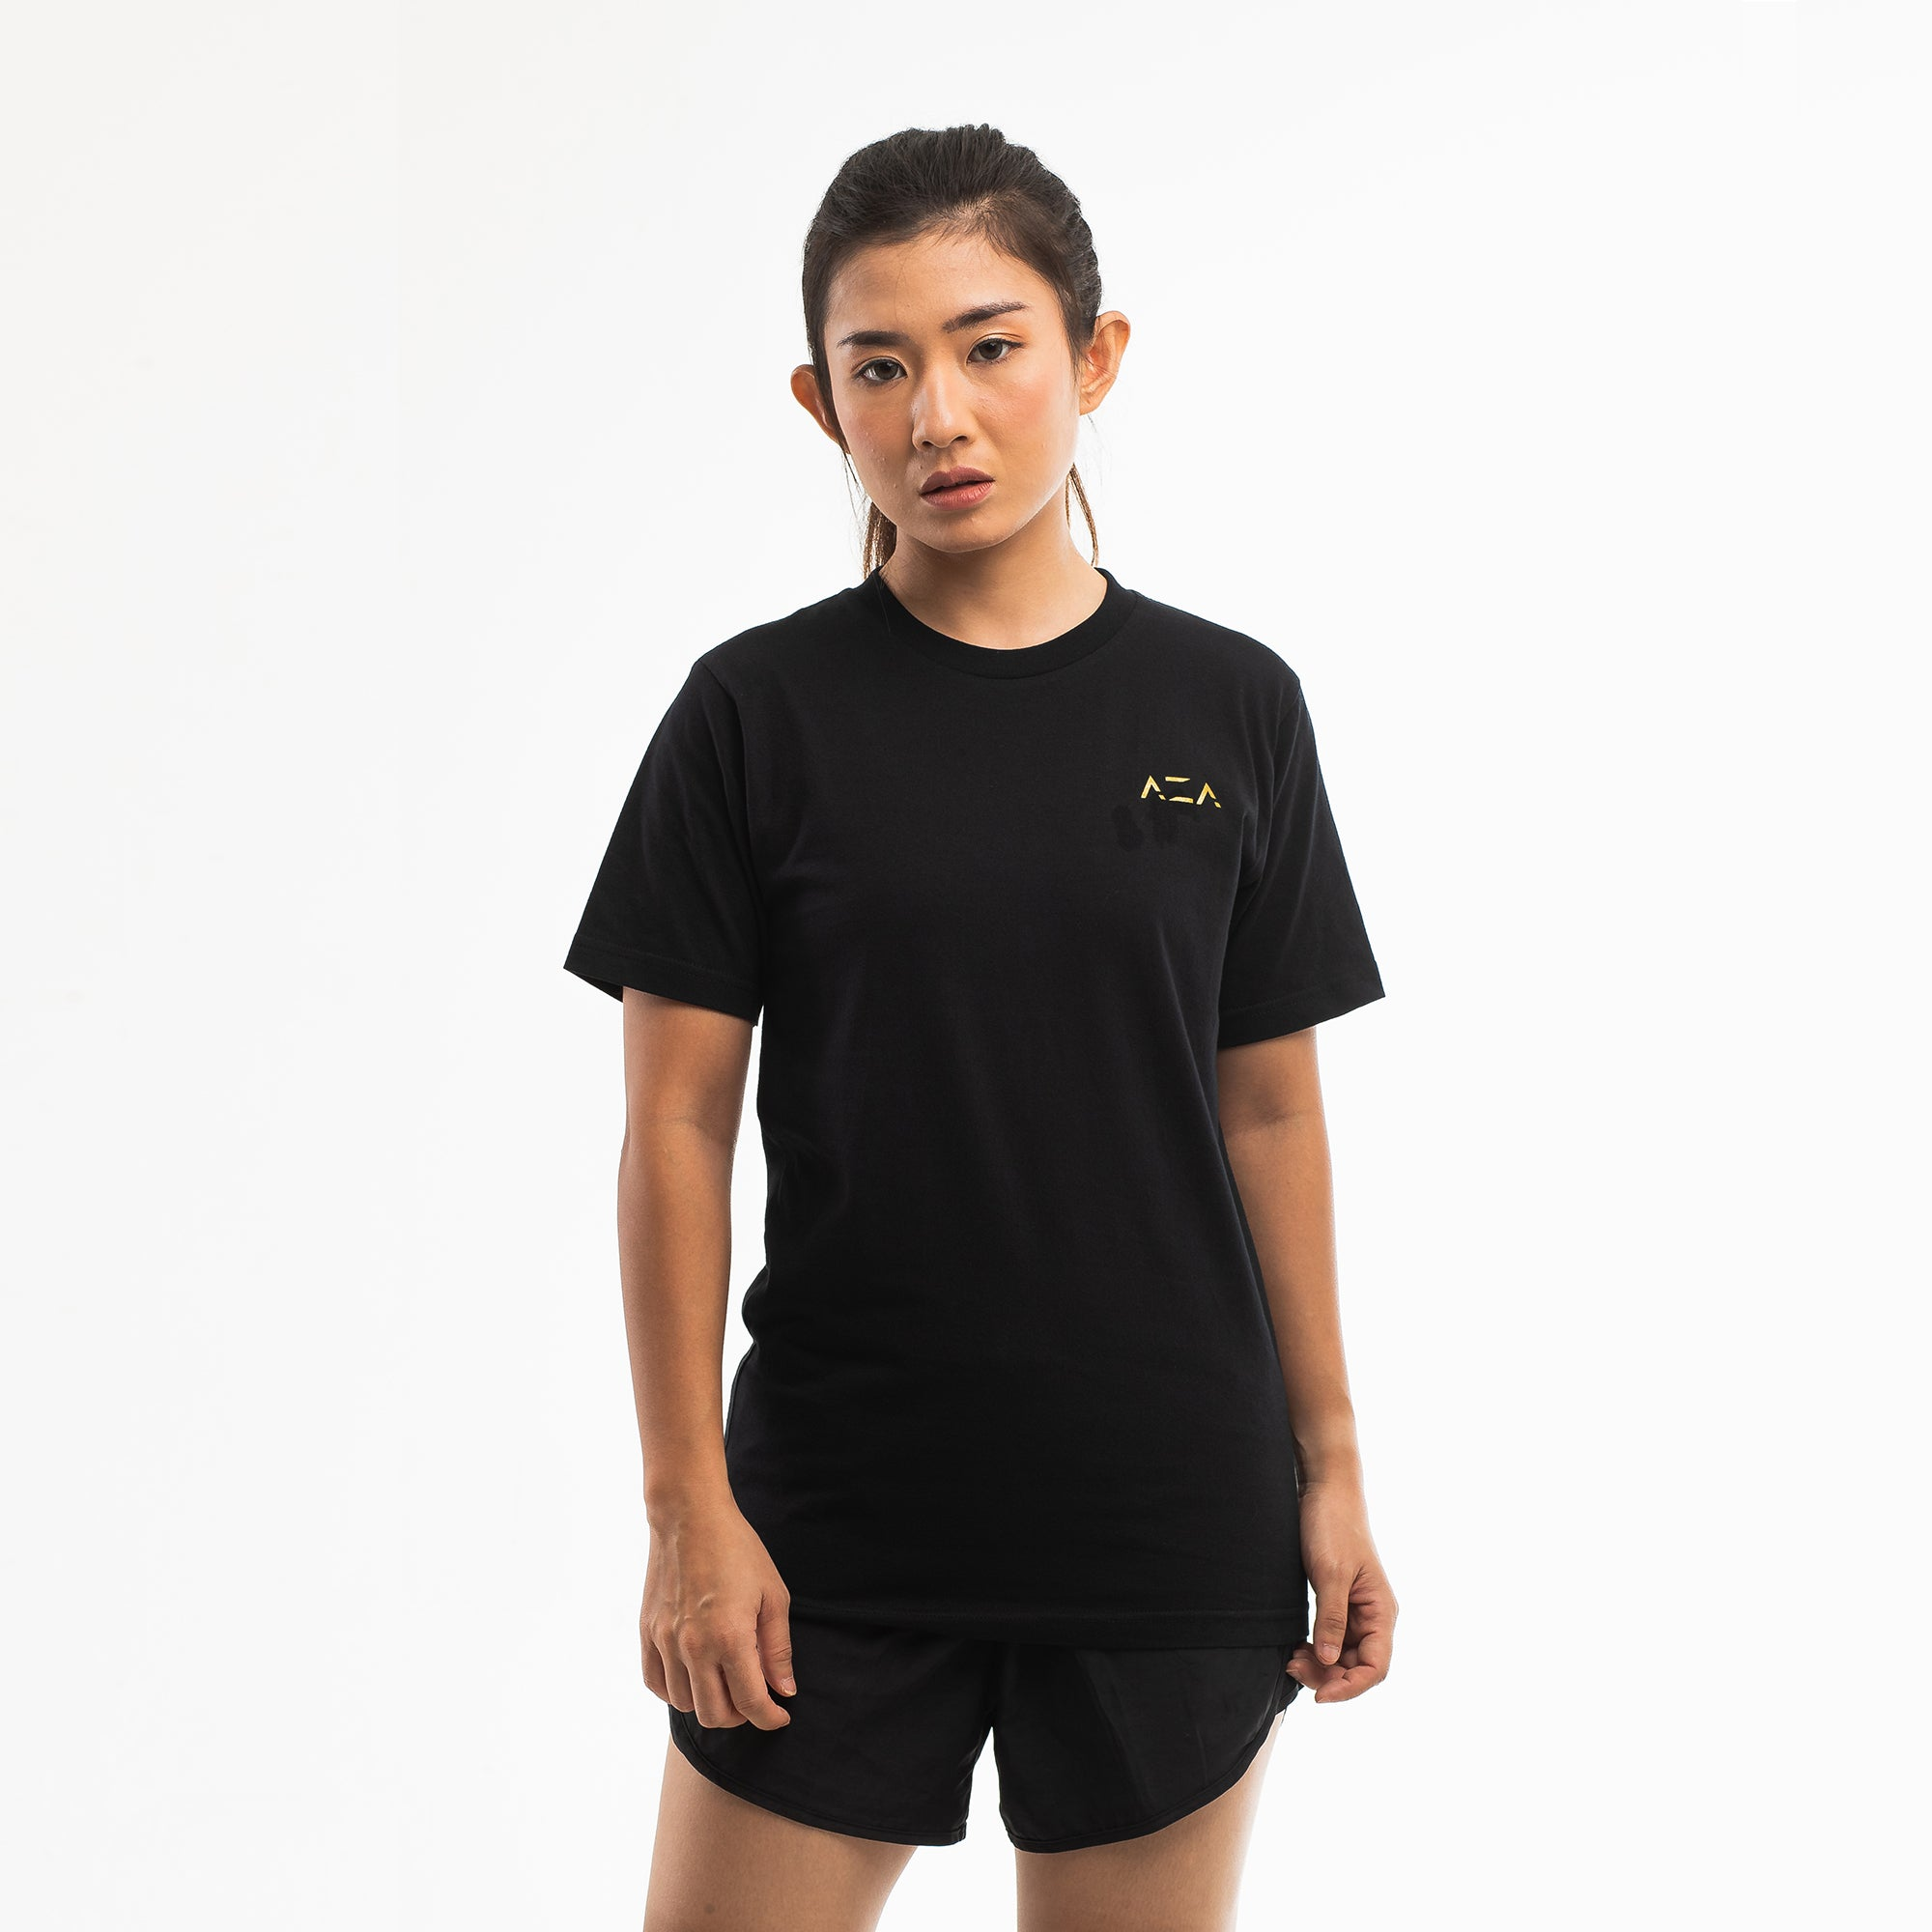 AZA Escape T-Shirt - Black